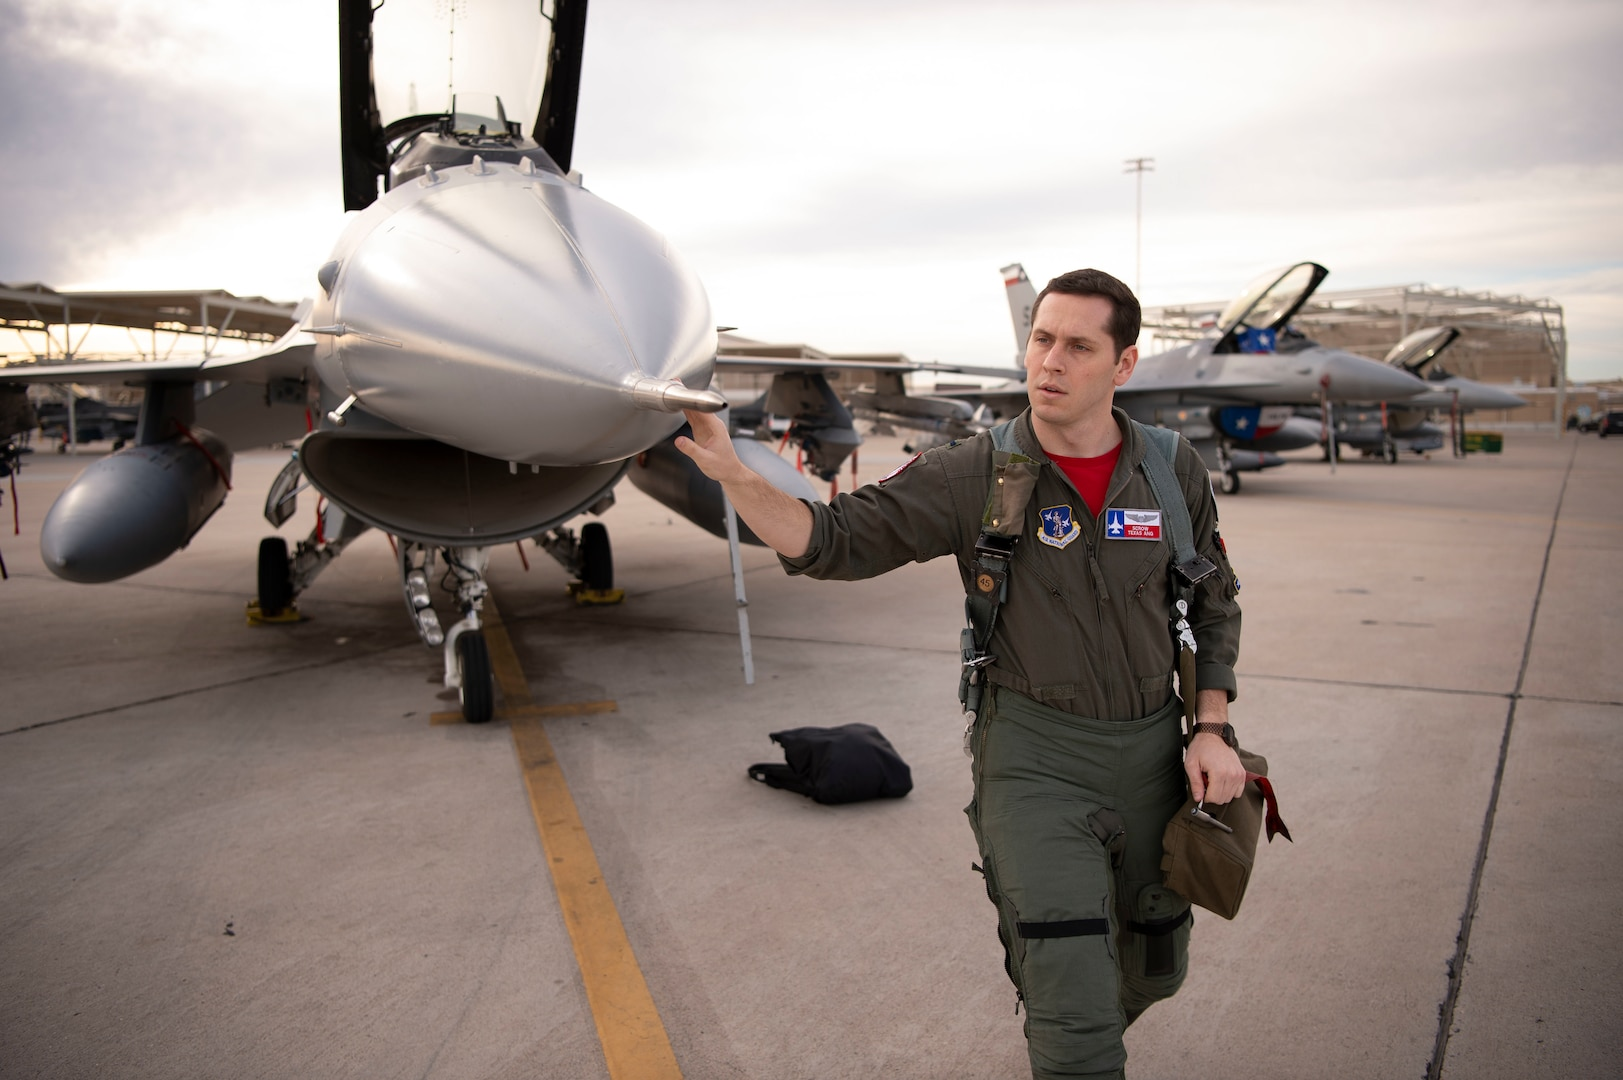 First Lt. James Demkowicz, a student pilot assigned to the 149th Fighter Wing, Air National Guard, conducts preflight checks prior to launch during Coronet Cactus, Feb. 28, 2020, at Luke Air Force Base, Ariz. The annual training event deploys members of the 149th Fighter Wing, headquartered at Joint Base San Antonio-Lackland, Texas, to another environment to familiarize them with accomplishing mission objectives in an unfamiliar location.